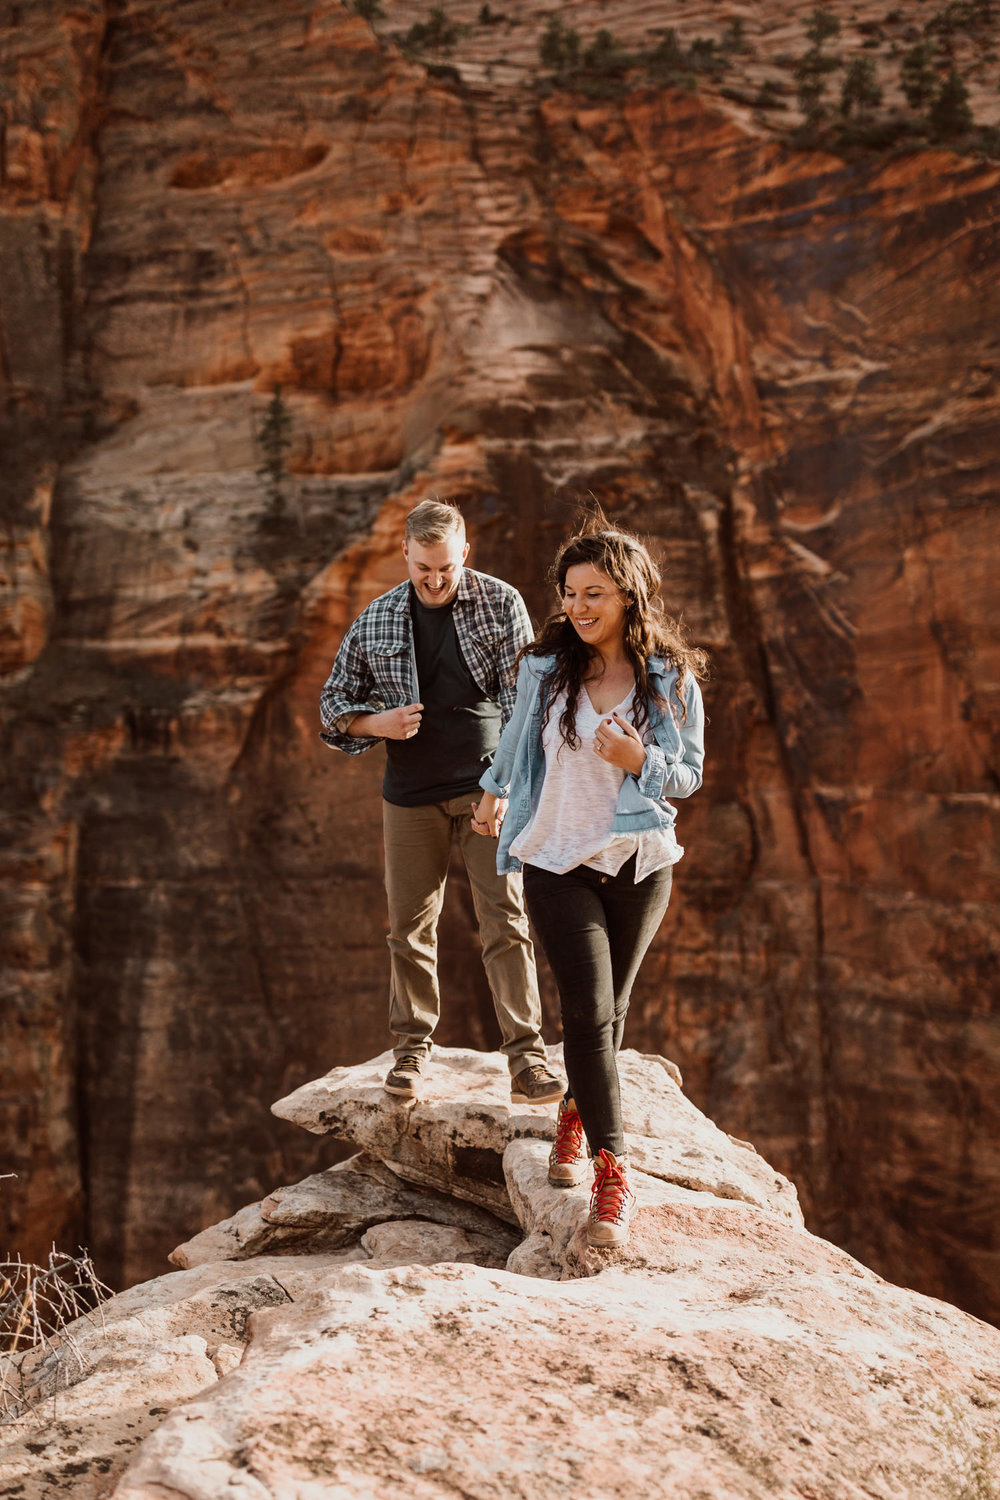 zion-national-park-engagements-15.jpg